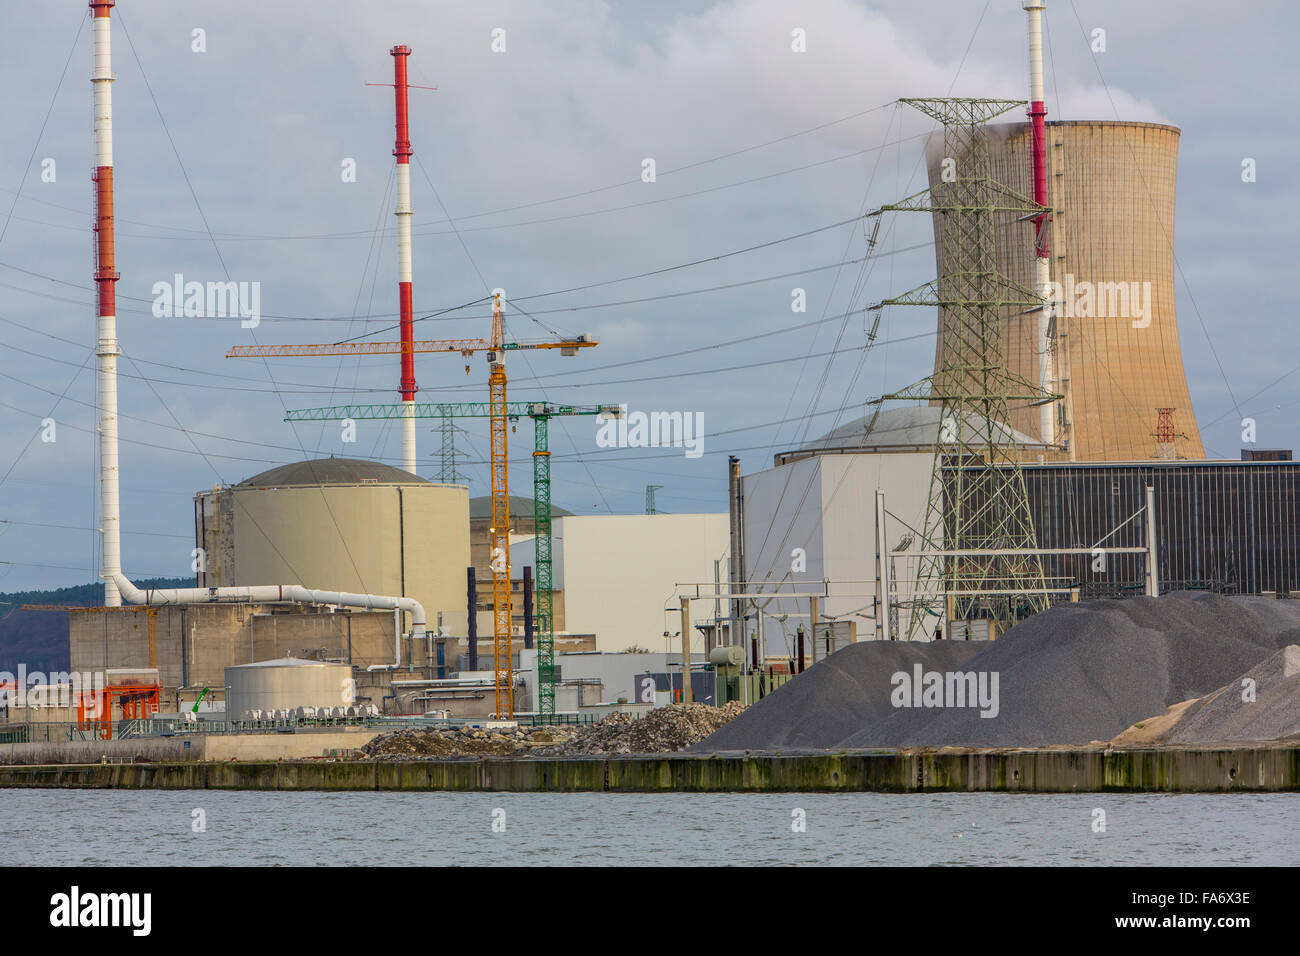 The Belgian nuclear power plant Tihange, 3 pressurized water reactor, in Huy, Belgium, at river Maas, run by Electrabel - Stock Image